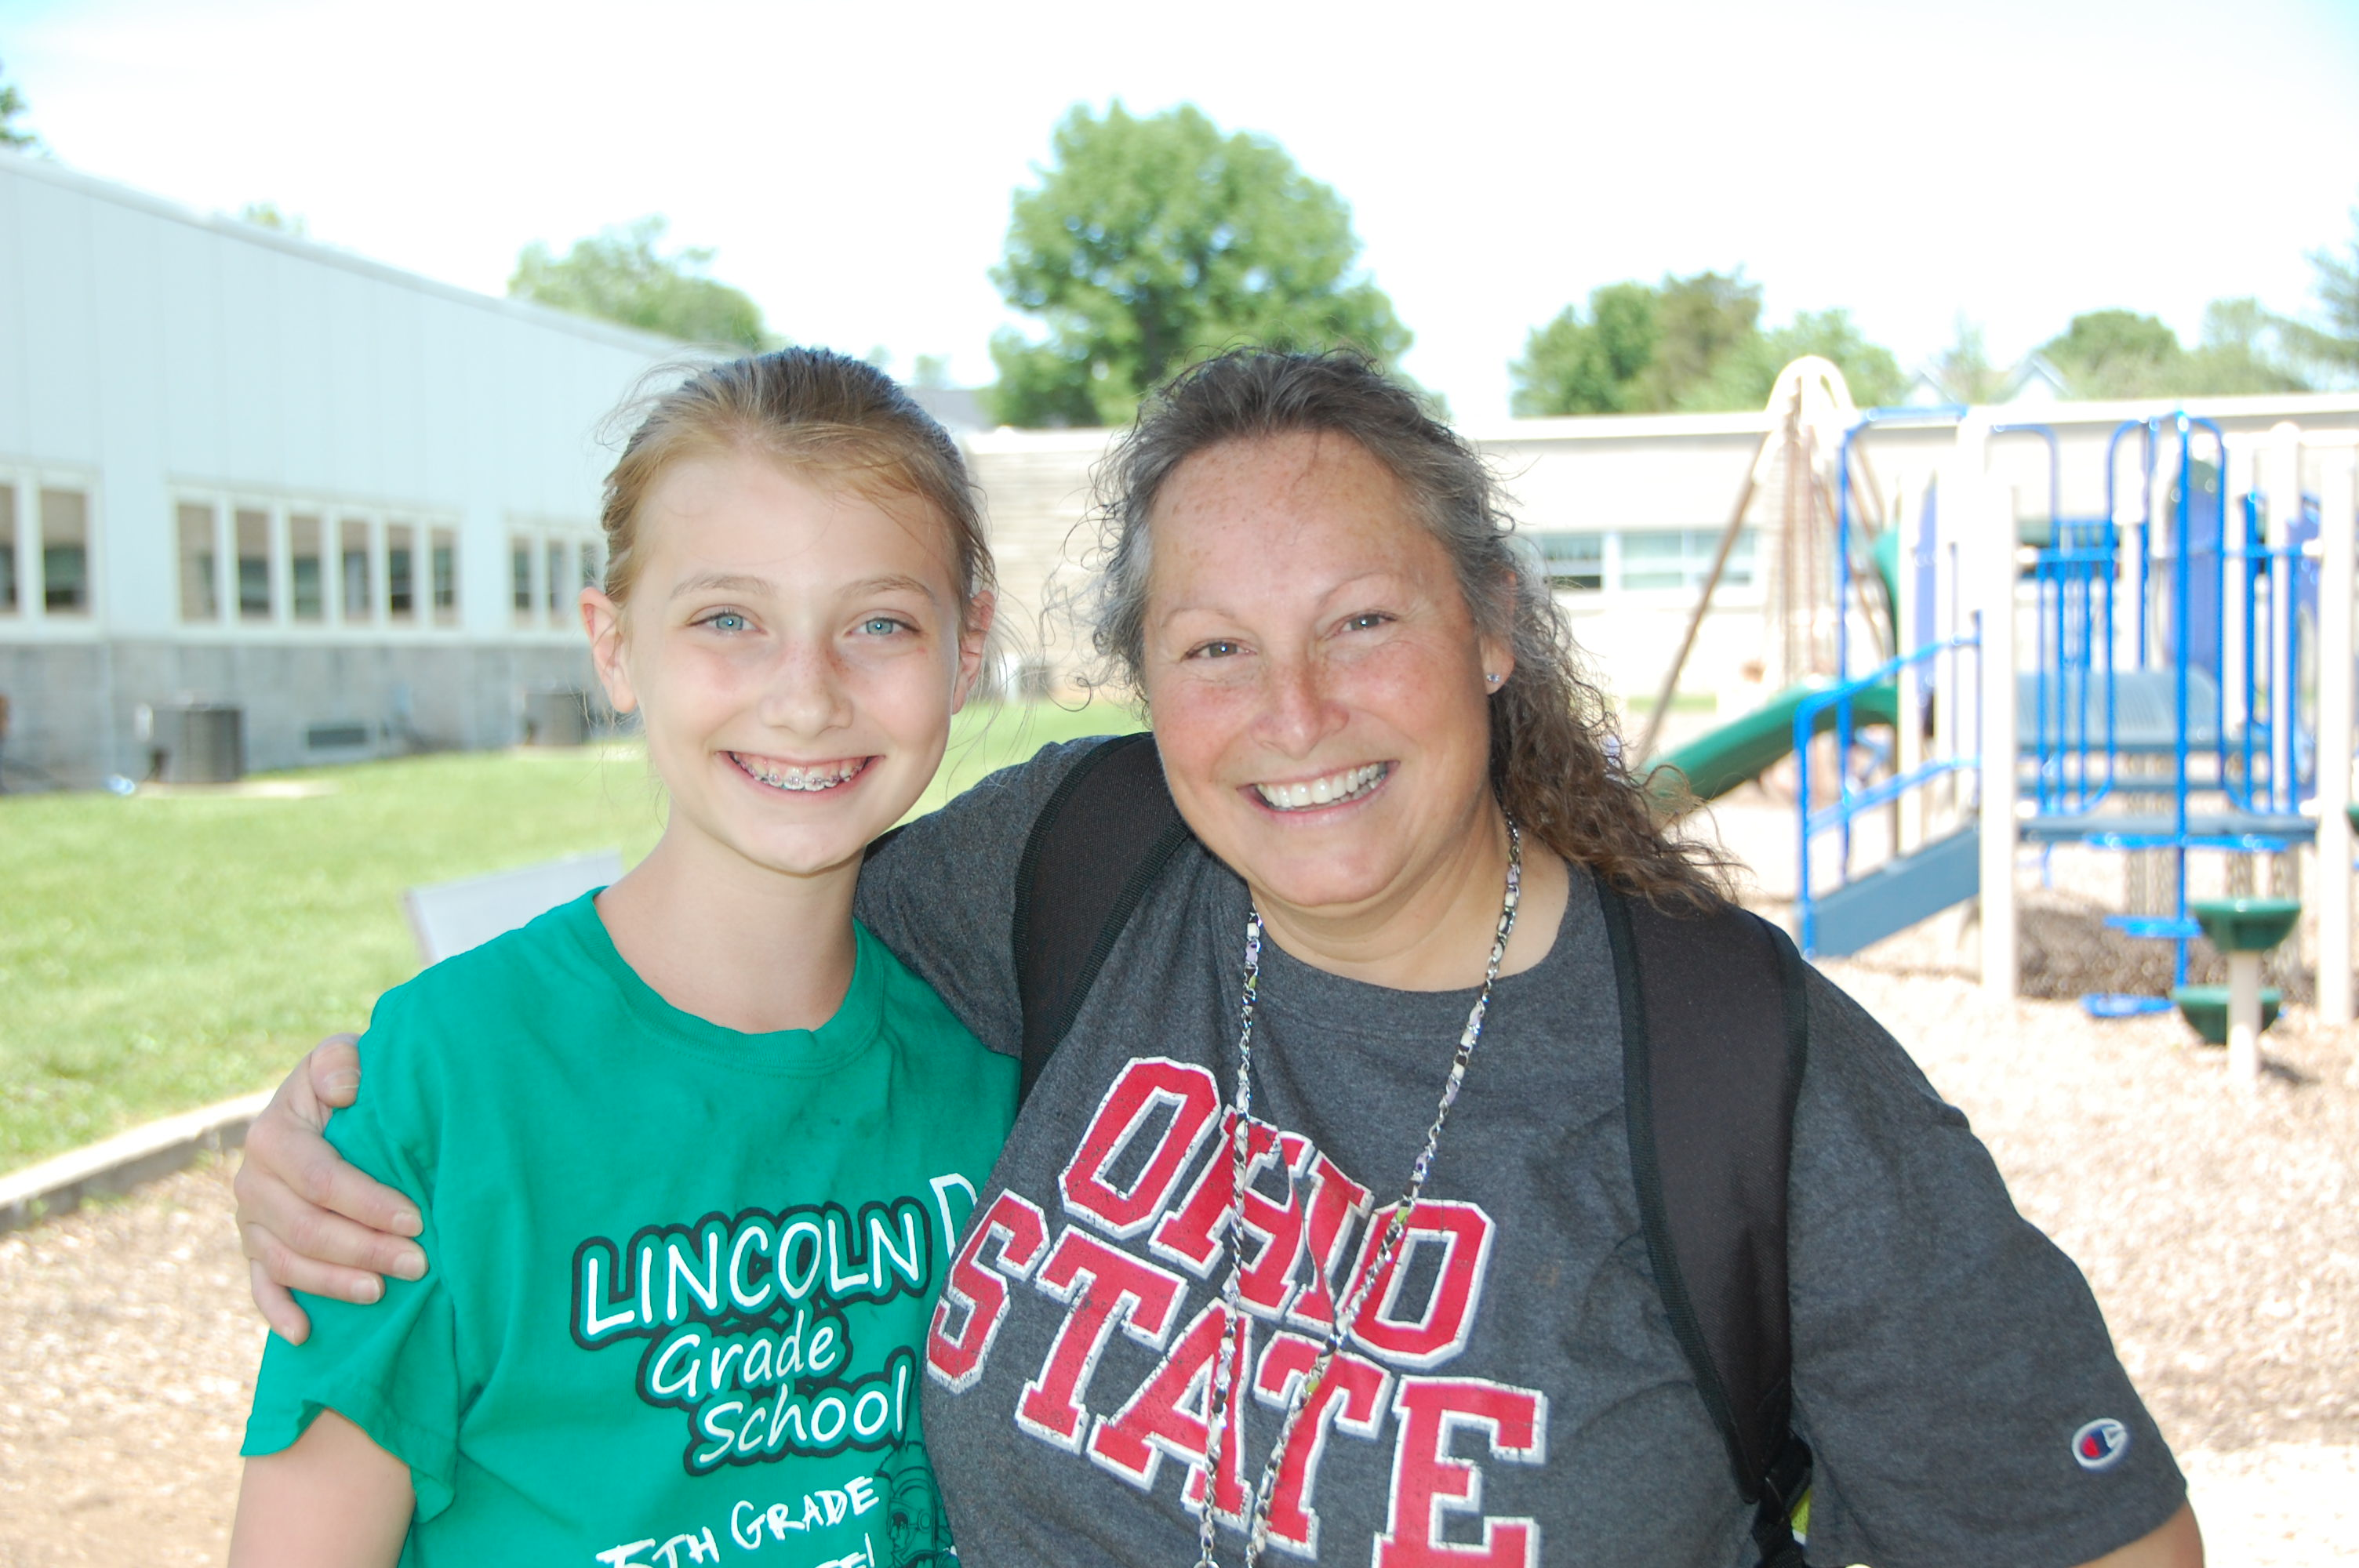 1st Place Runner-up: Paige Jones and her teacher Lydia Weber of Lincoln Elementary School